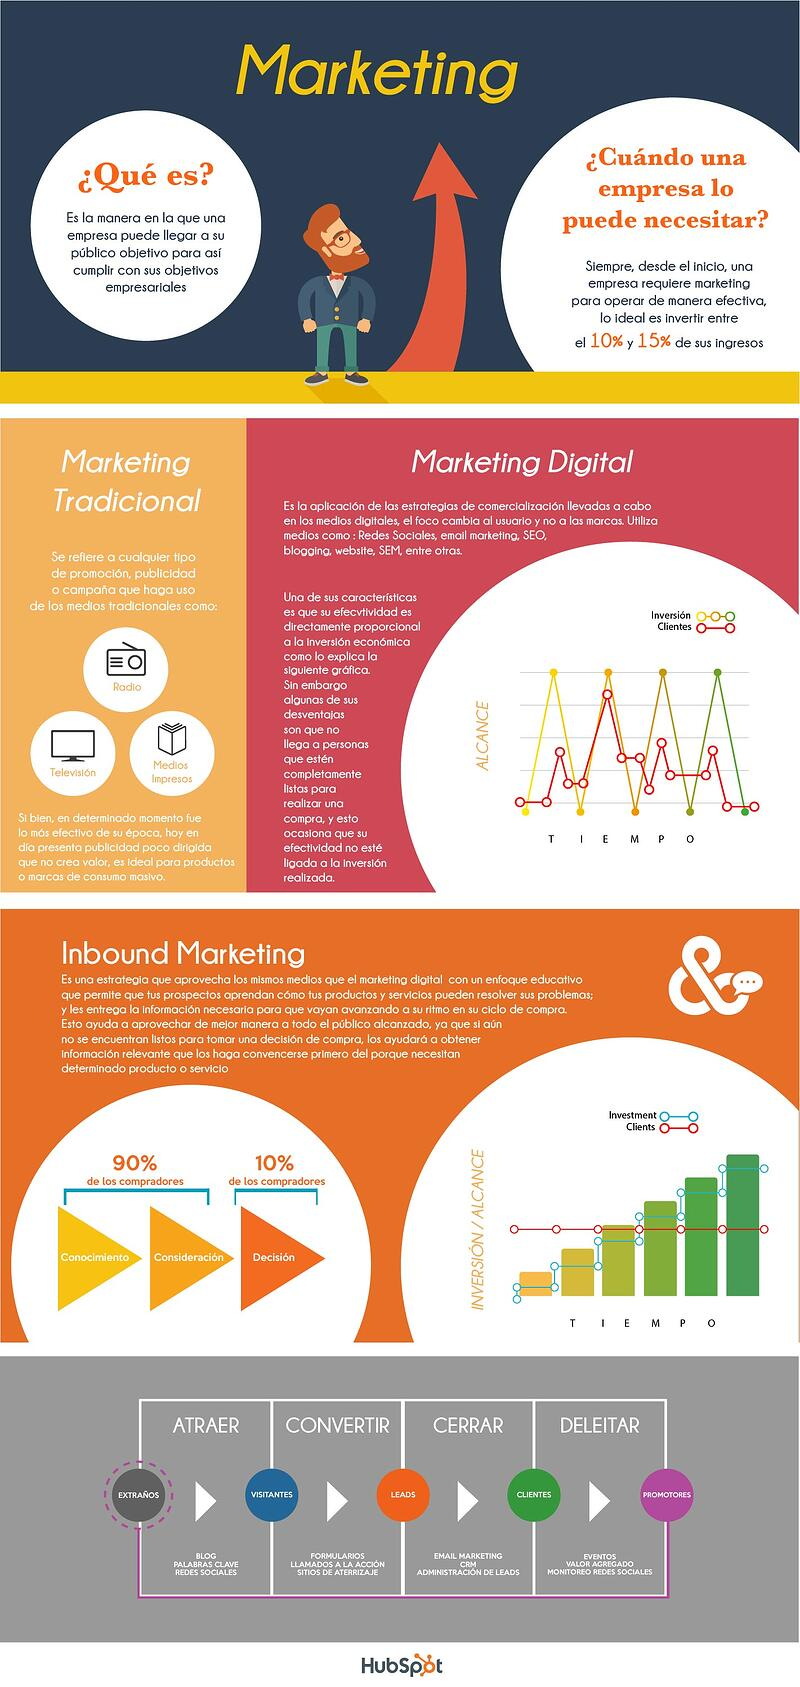 Diferencia entre el marketing tradicional, el marketing digital y el inbound marketing